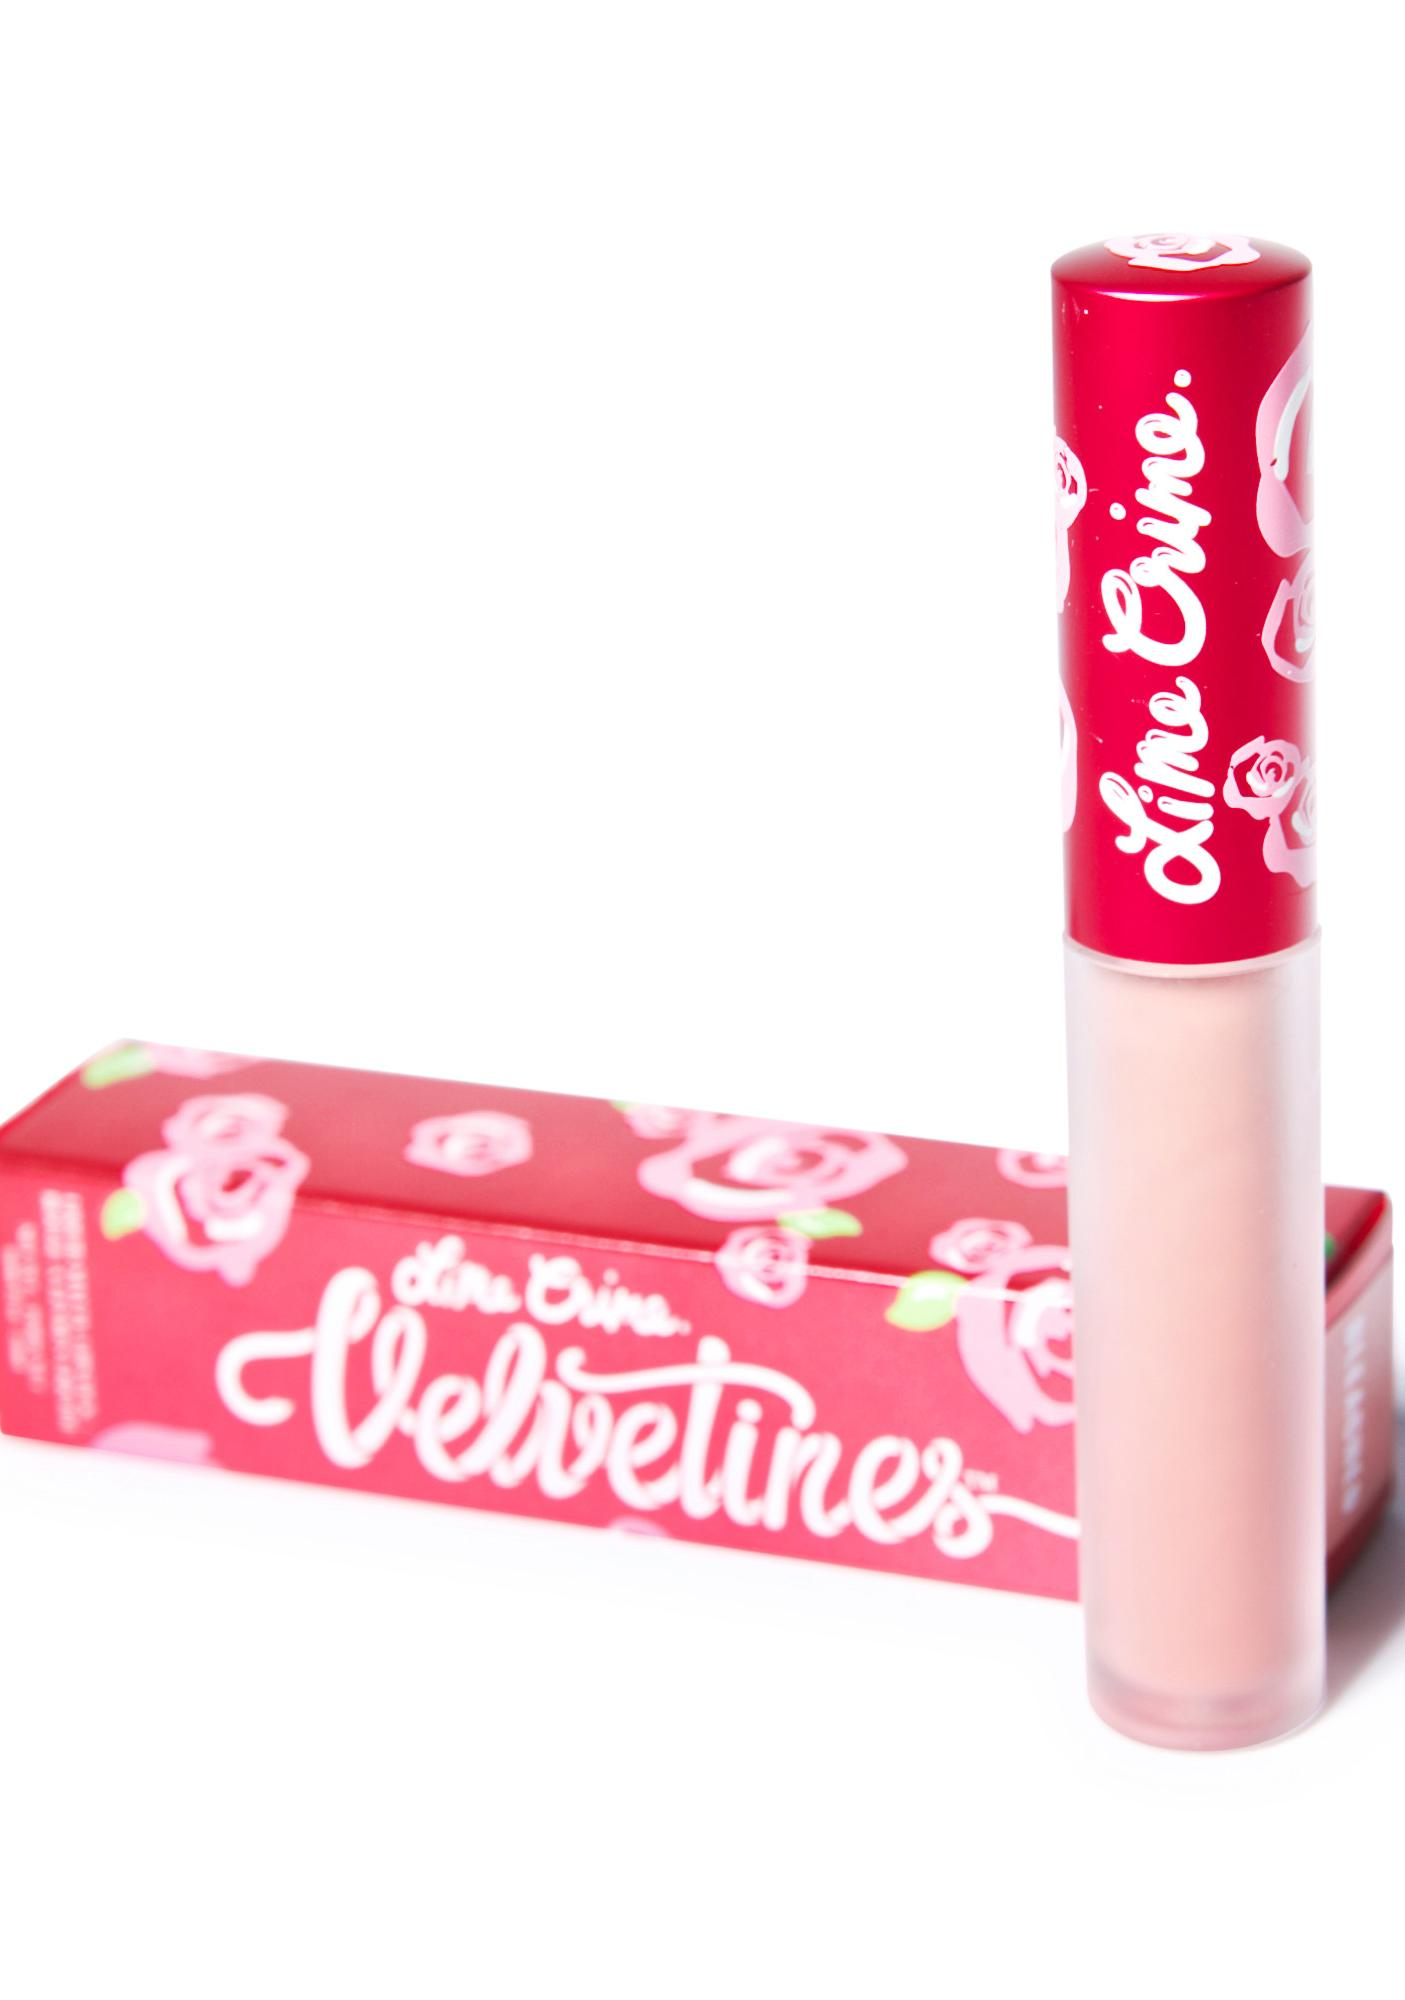 Lime Crime's mission is to revolutionize makeup. We create kick-ass products so you can create looks as individual as your mood. Whether you're looking for a new go-to color or a special occasion sparkle, our collections are designed with the perfect shades. Lime Crime's here to shake things up.